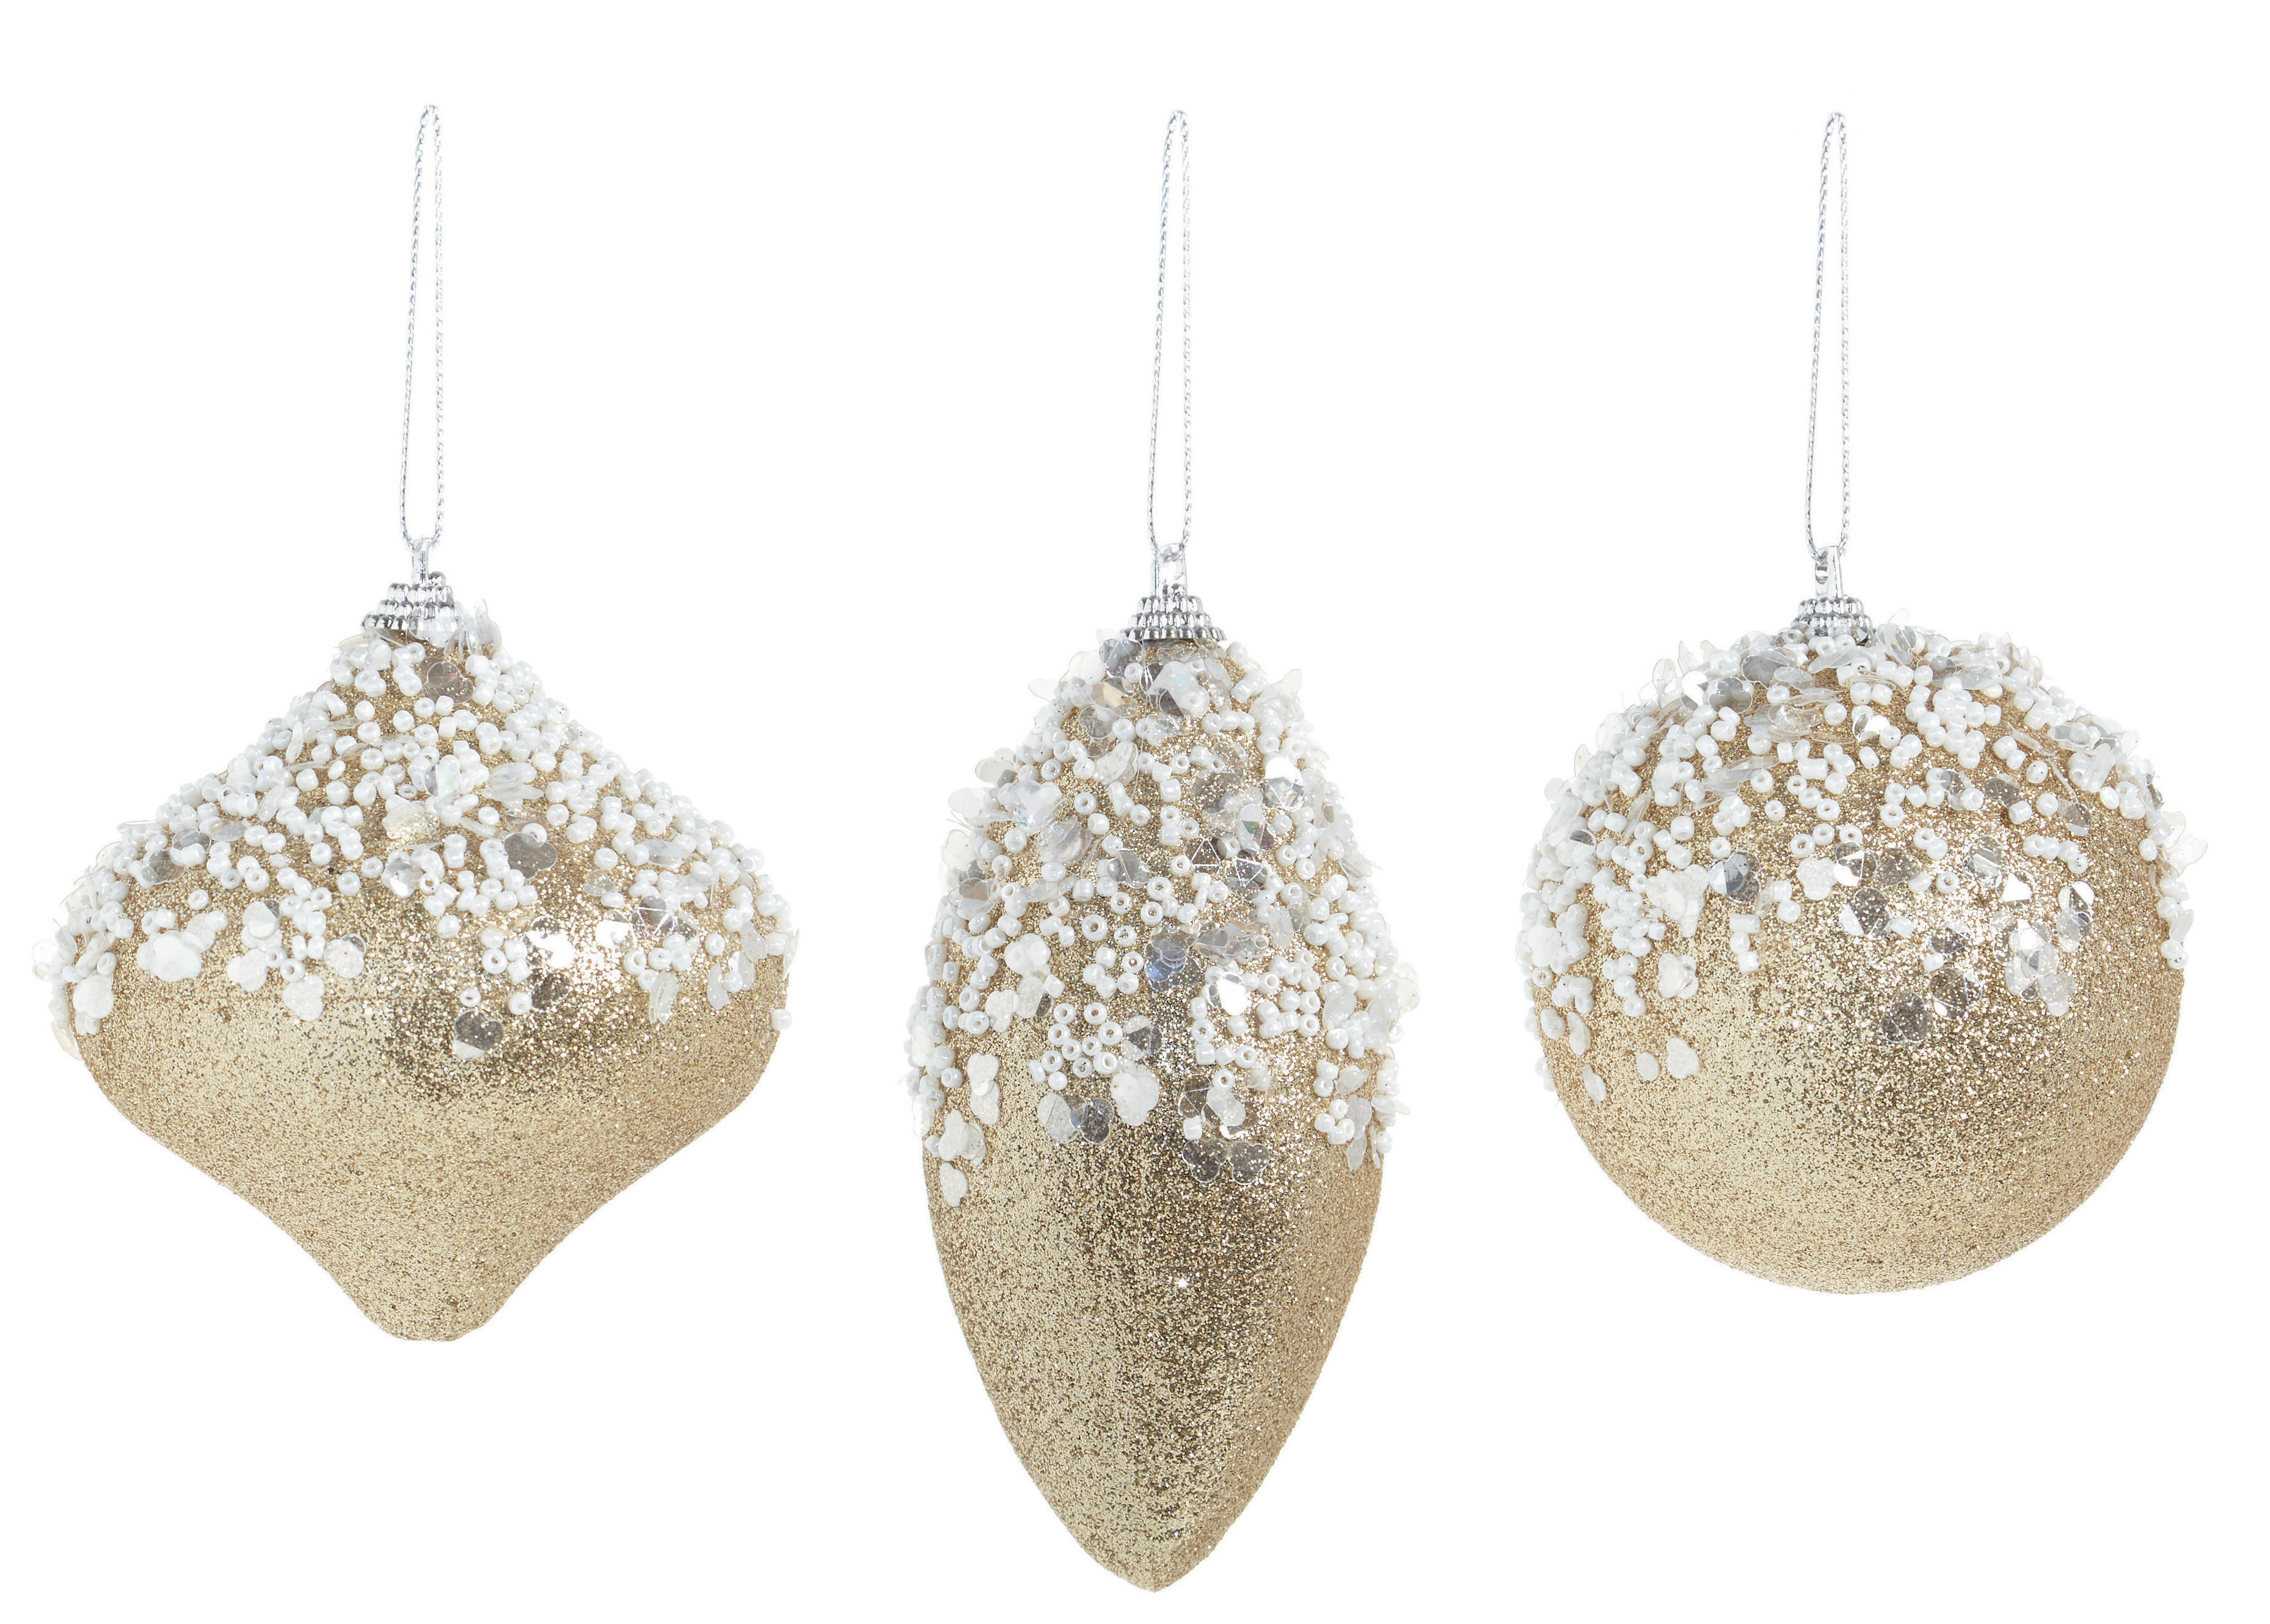 3 X Gold Vintage Style Christmas Tree Baubles Decorations